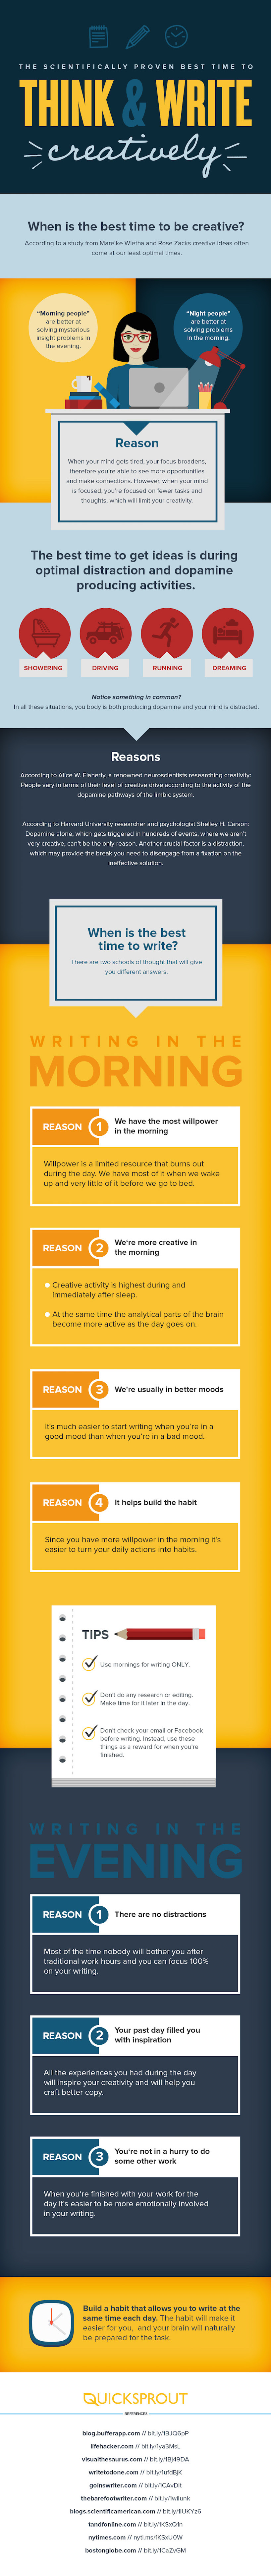 The best time to get ideas is during optimal distraction and dopamine producing activities. - #infographic